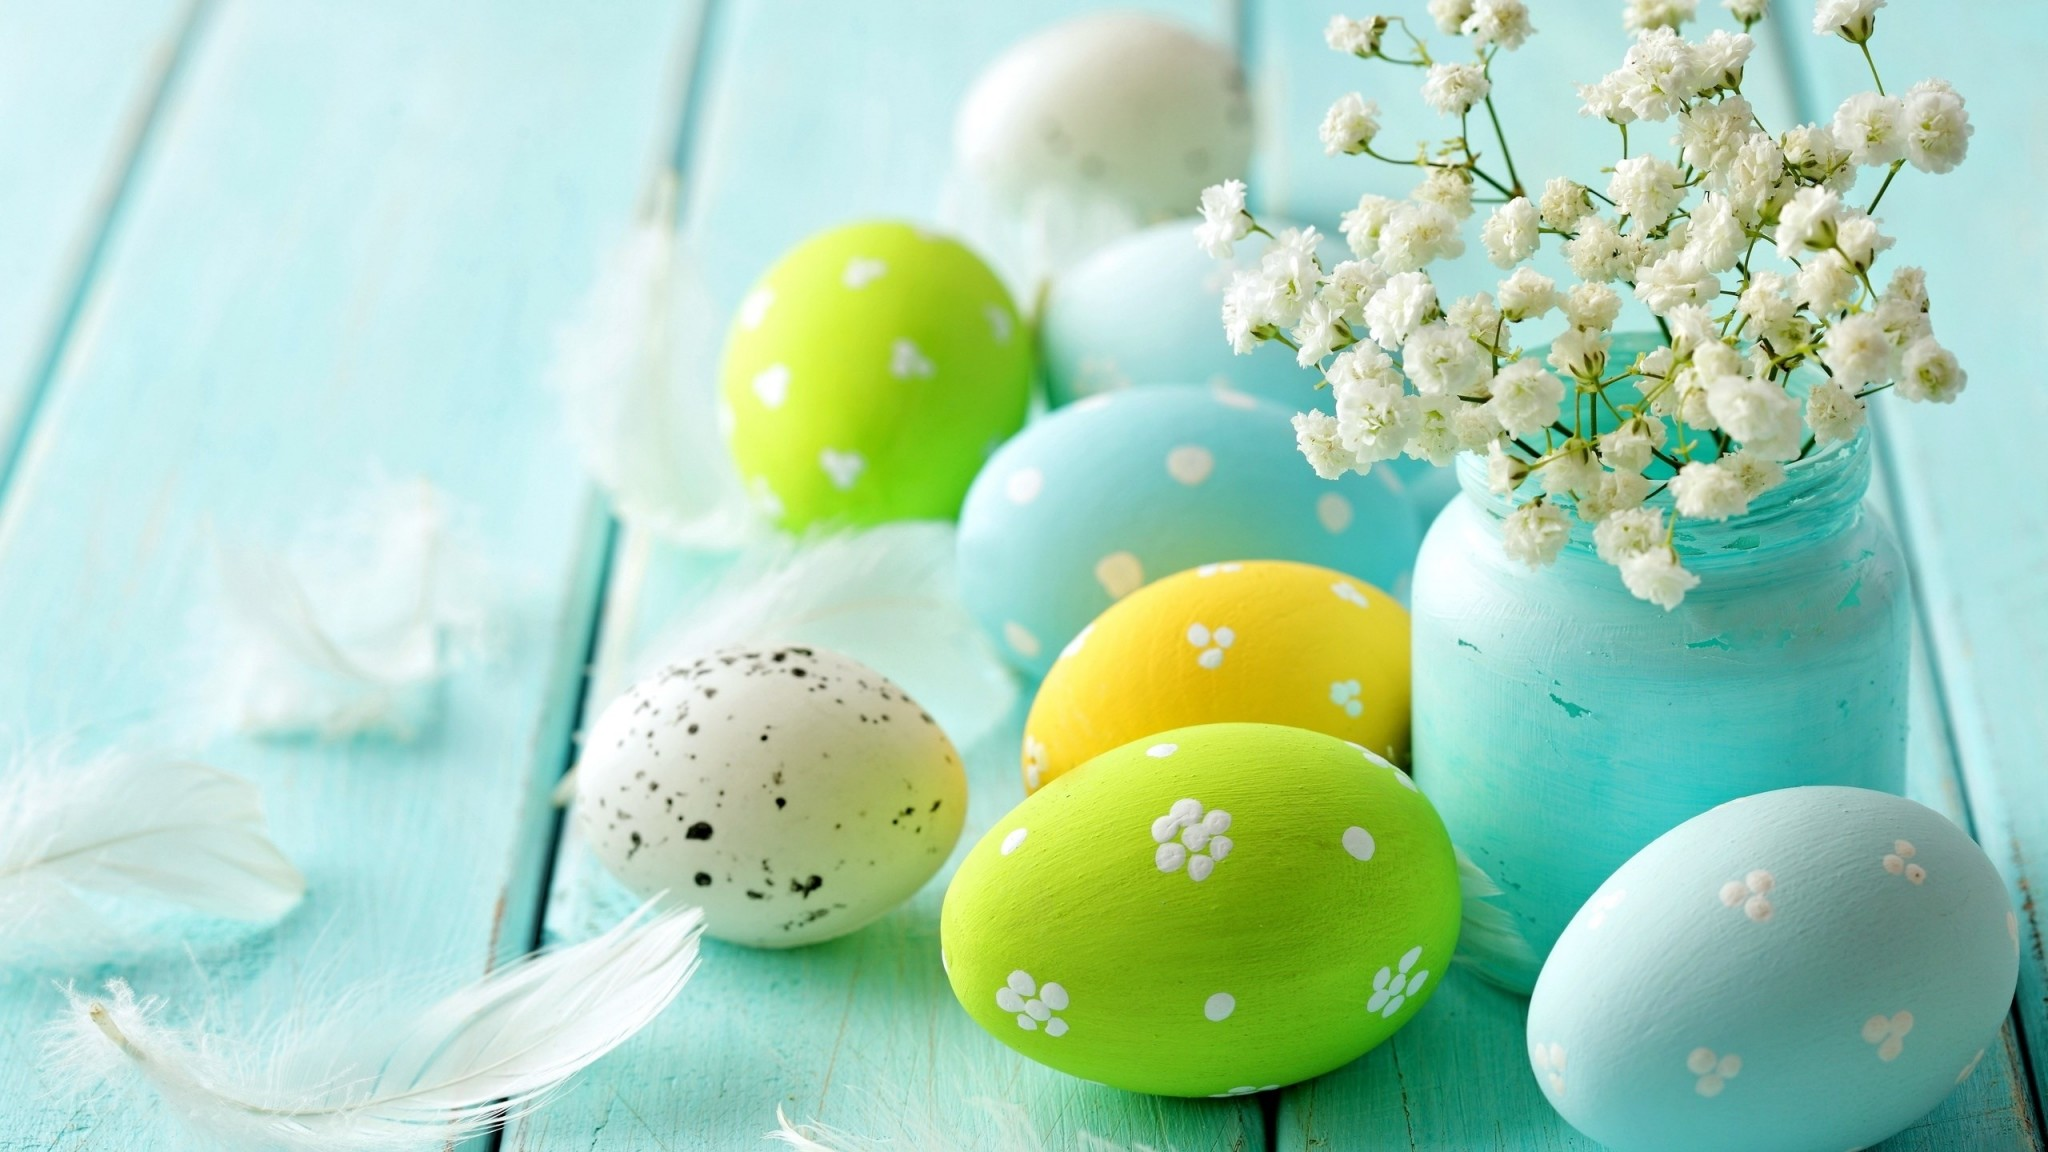 2560x1920 Wallpapers For Happy Easter Christian Wallpaper